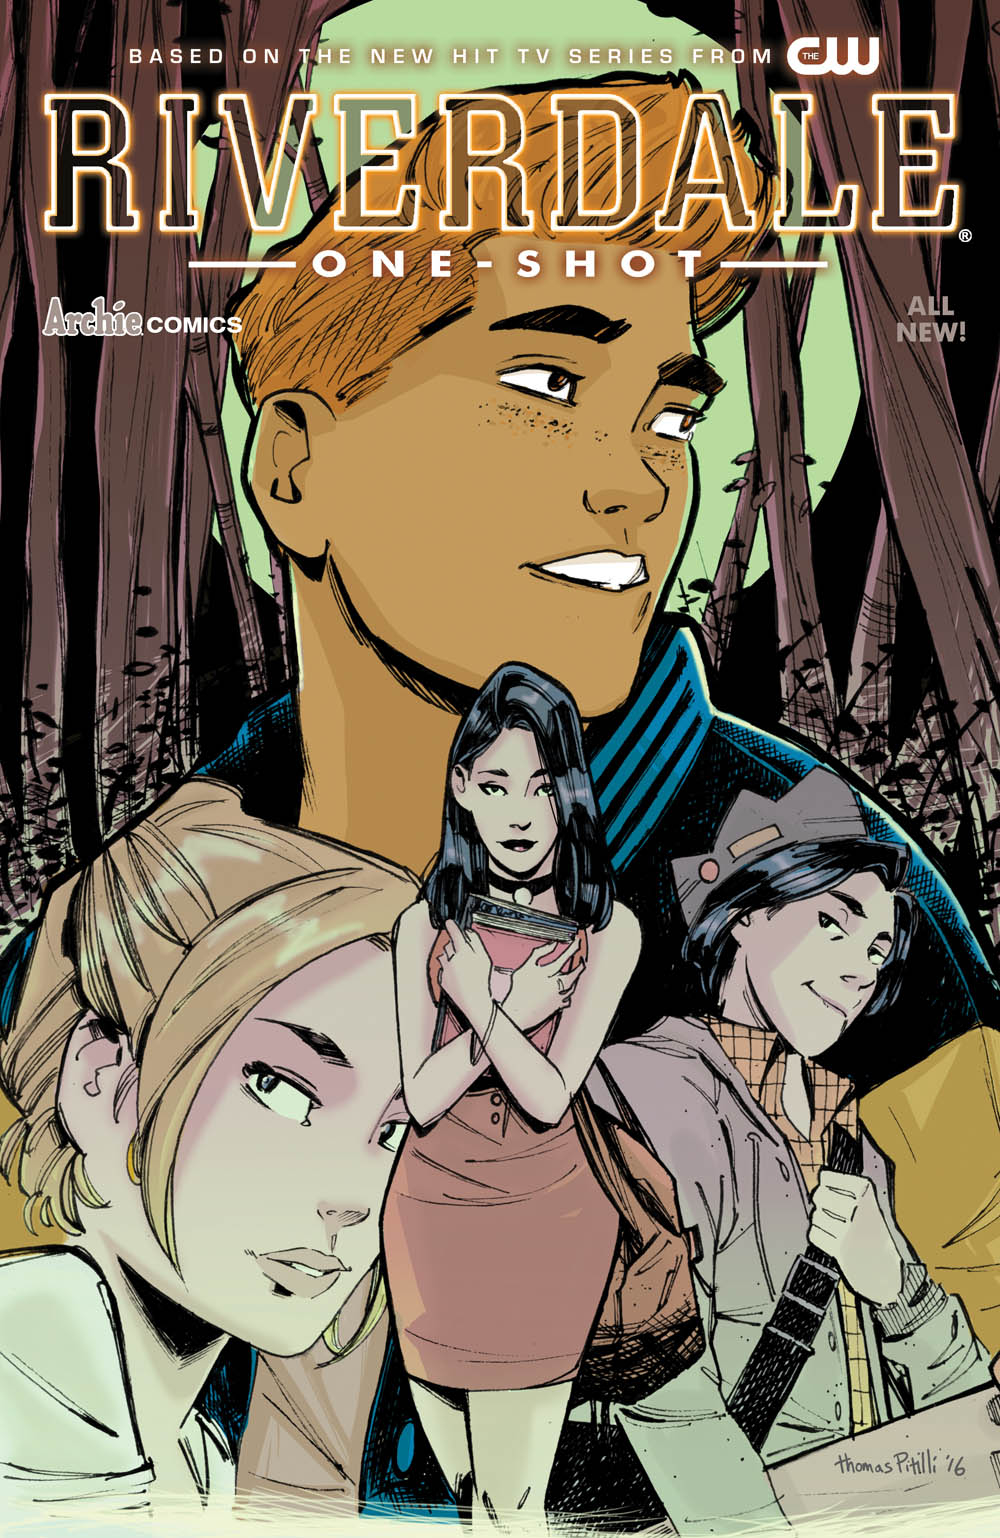 Riverdale one-shot cover by Thomas Pitilli